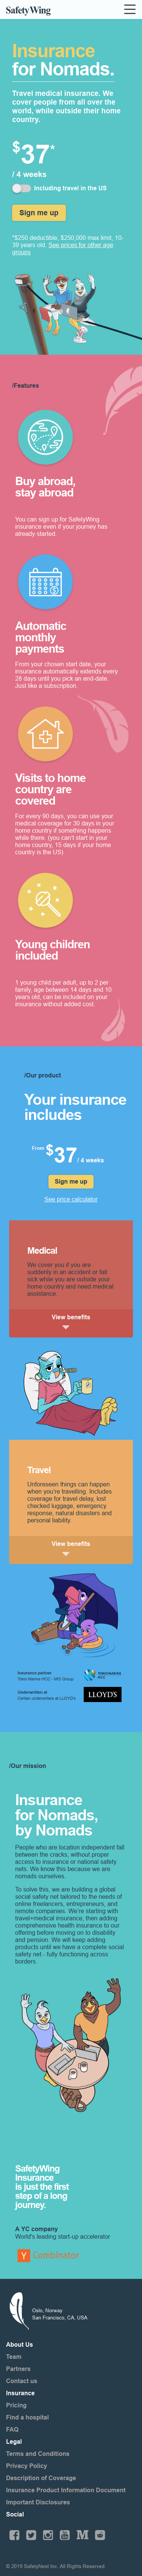 Example of Design for Finance, Insurance, Health Insurance, Mobile Landing Page by safetywing.com | Mobile Landing Page Design